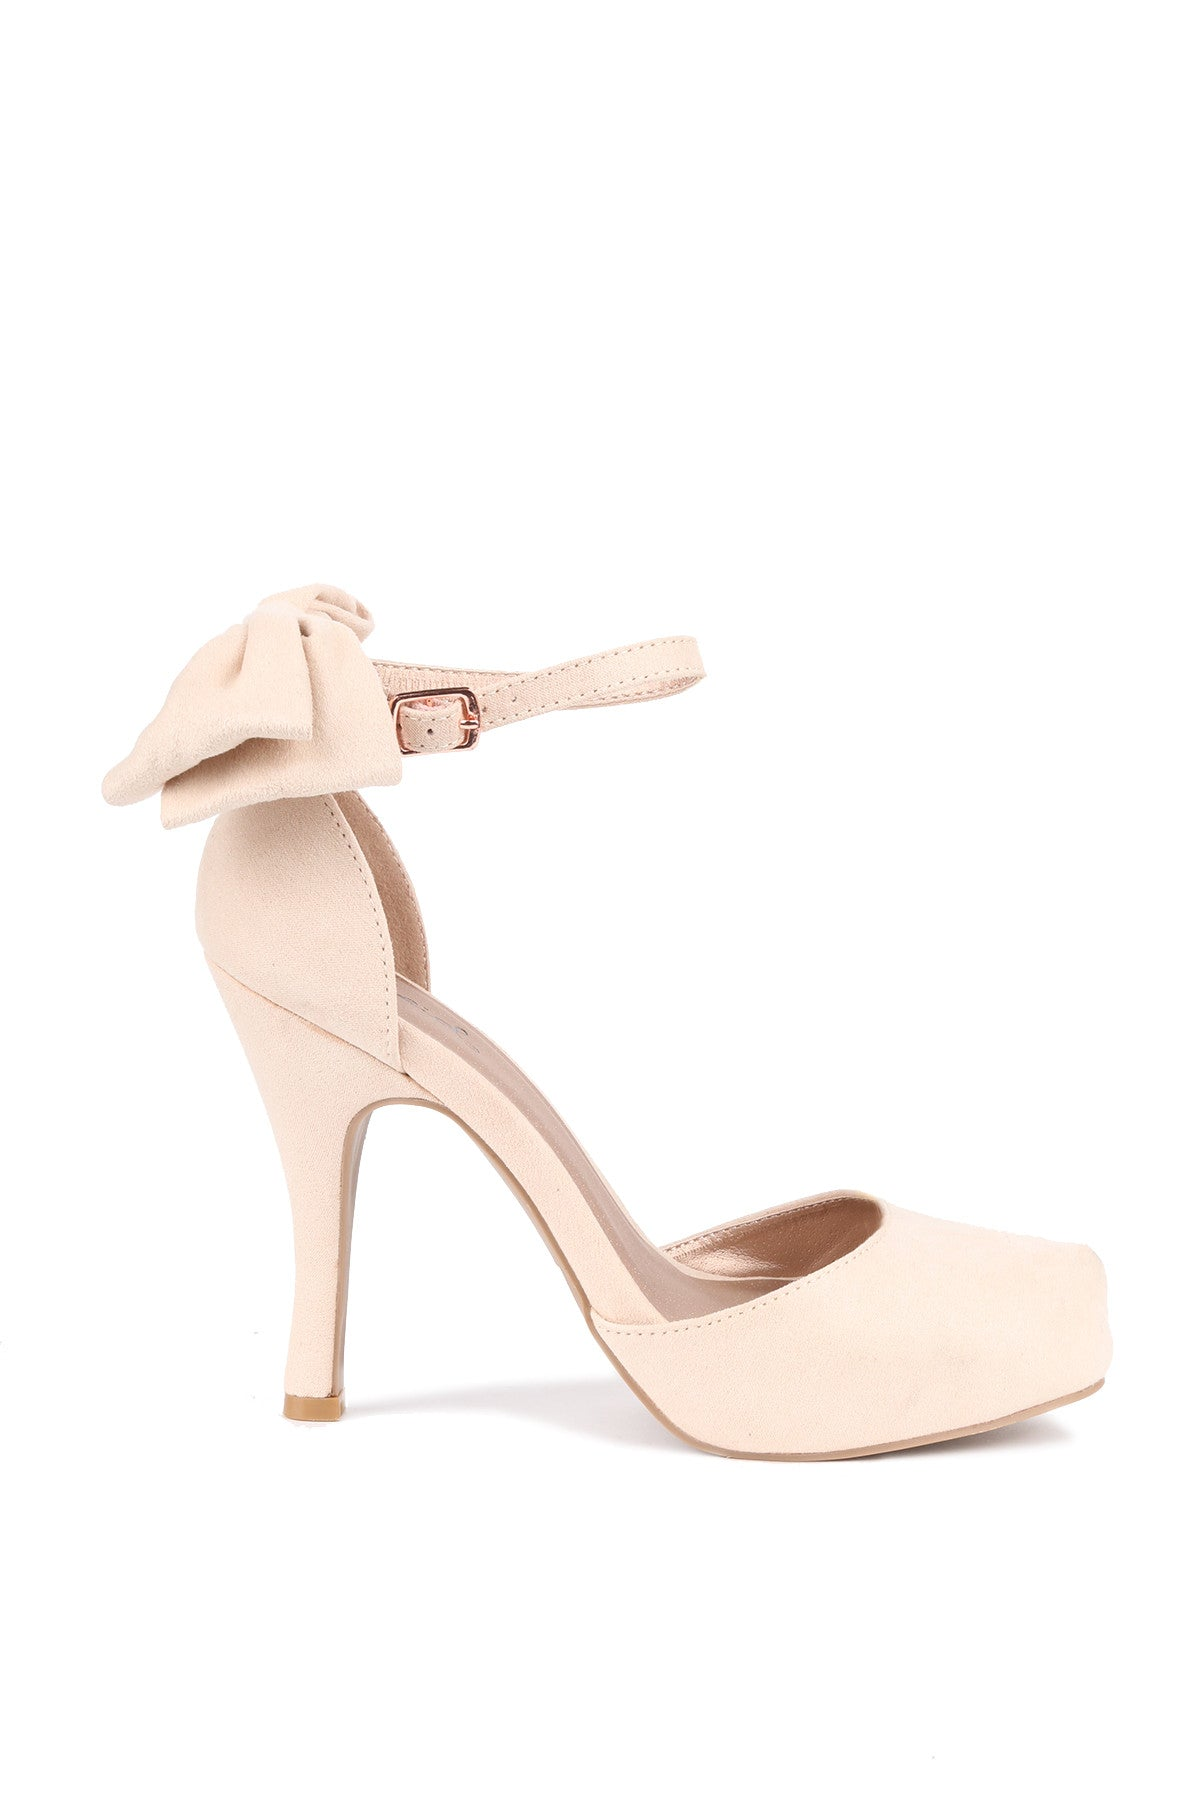 Ankle Strap High Heel Platform Pump Shoes